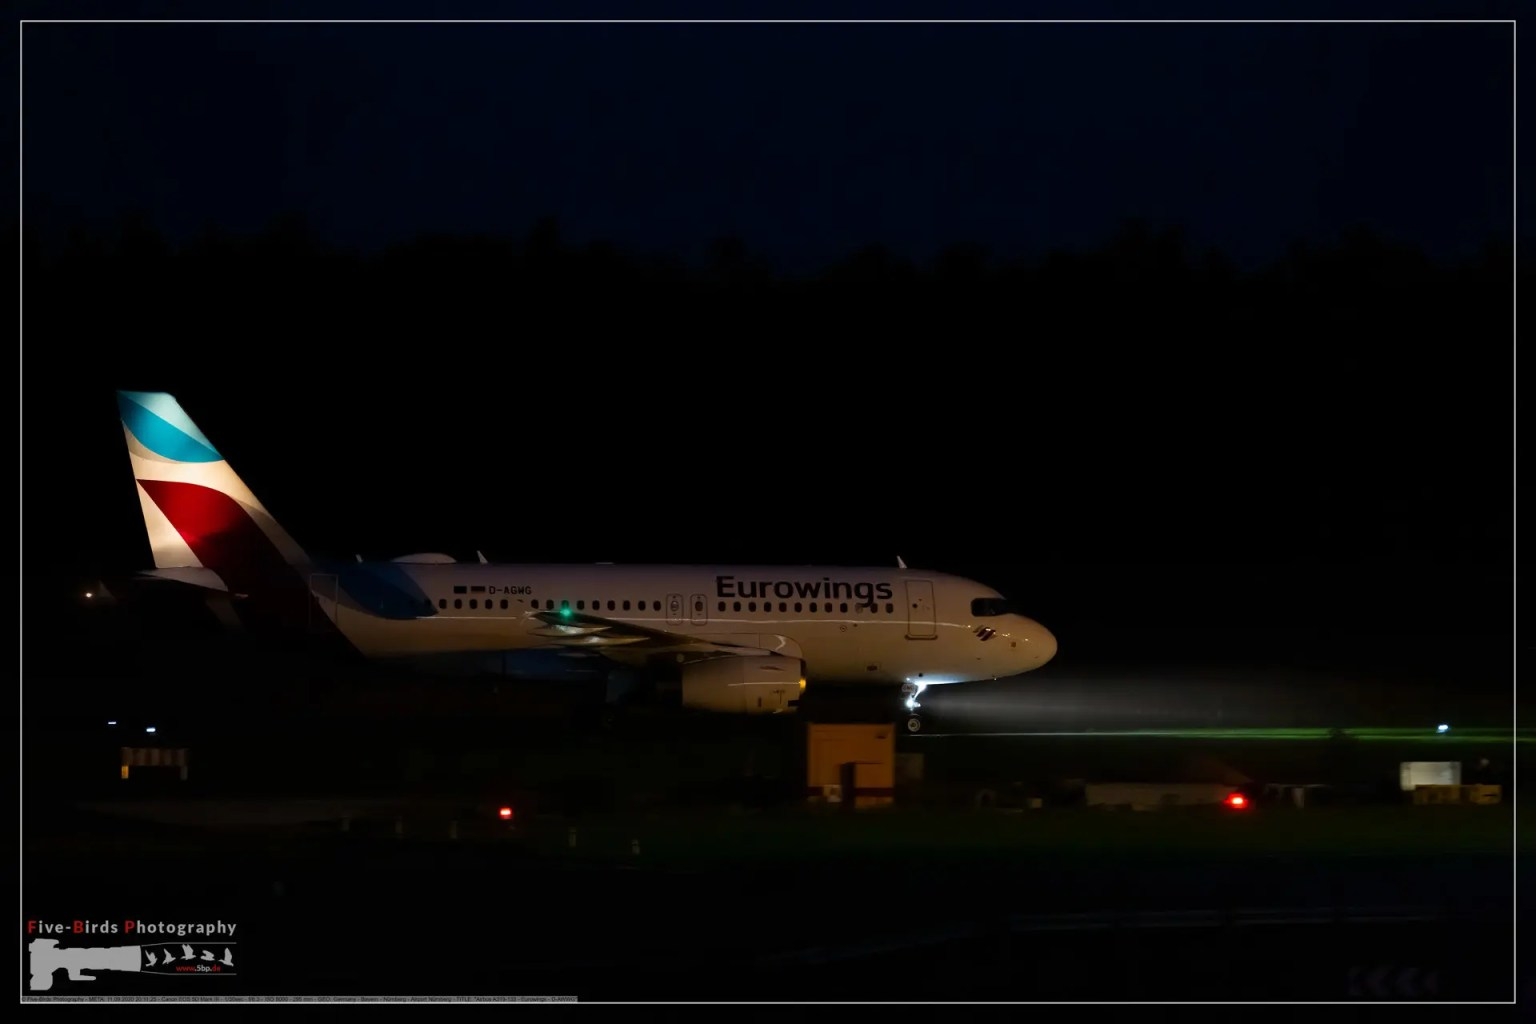 Airbus A319-132 - Eurowings - D-AWWG